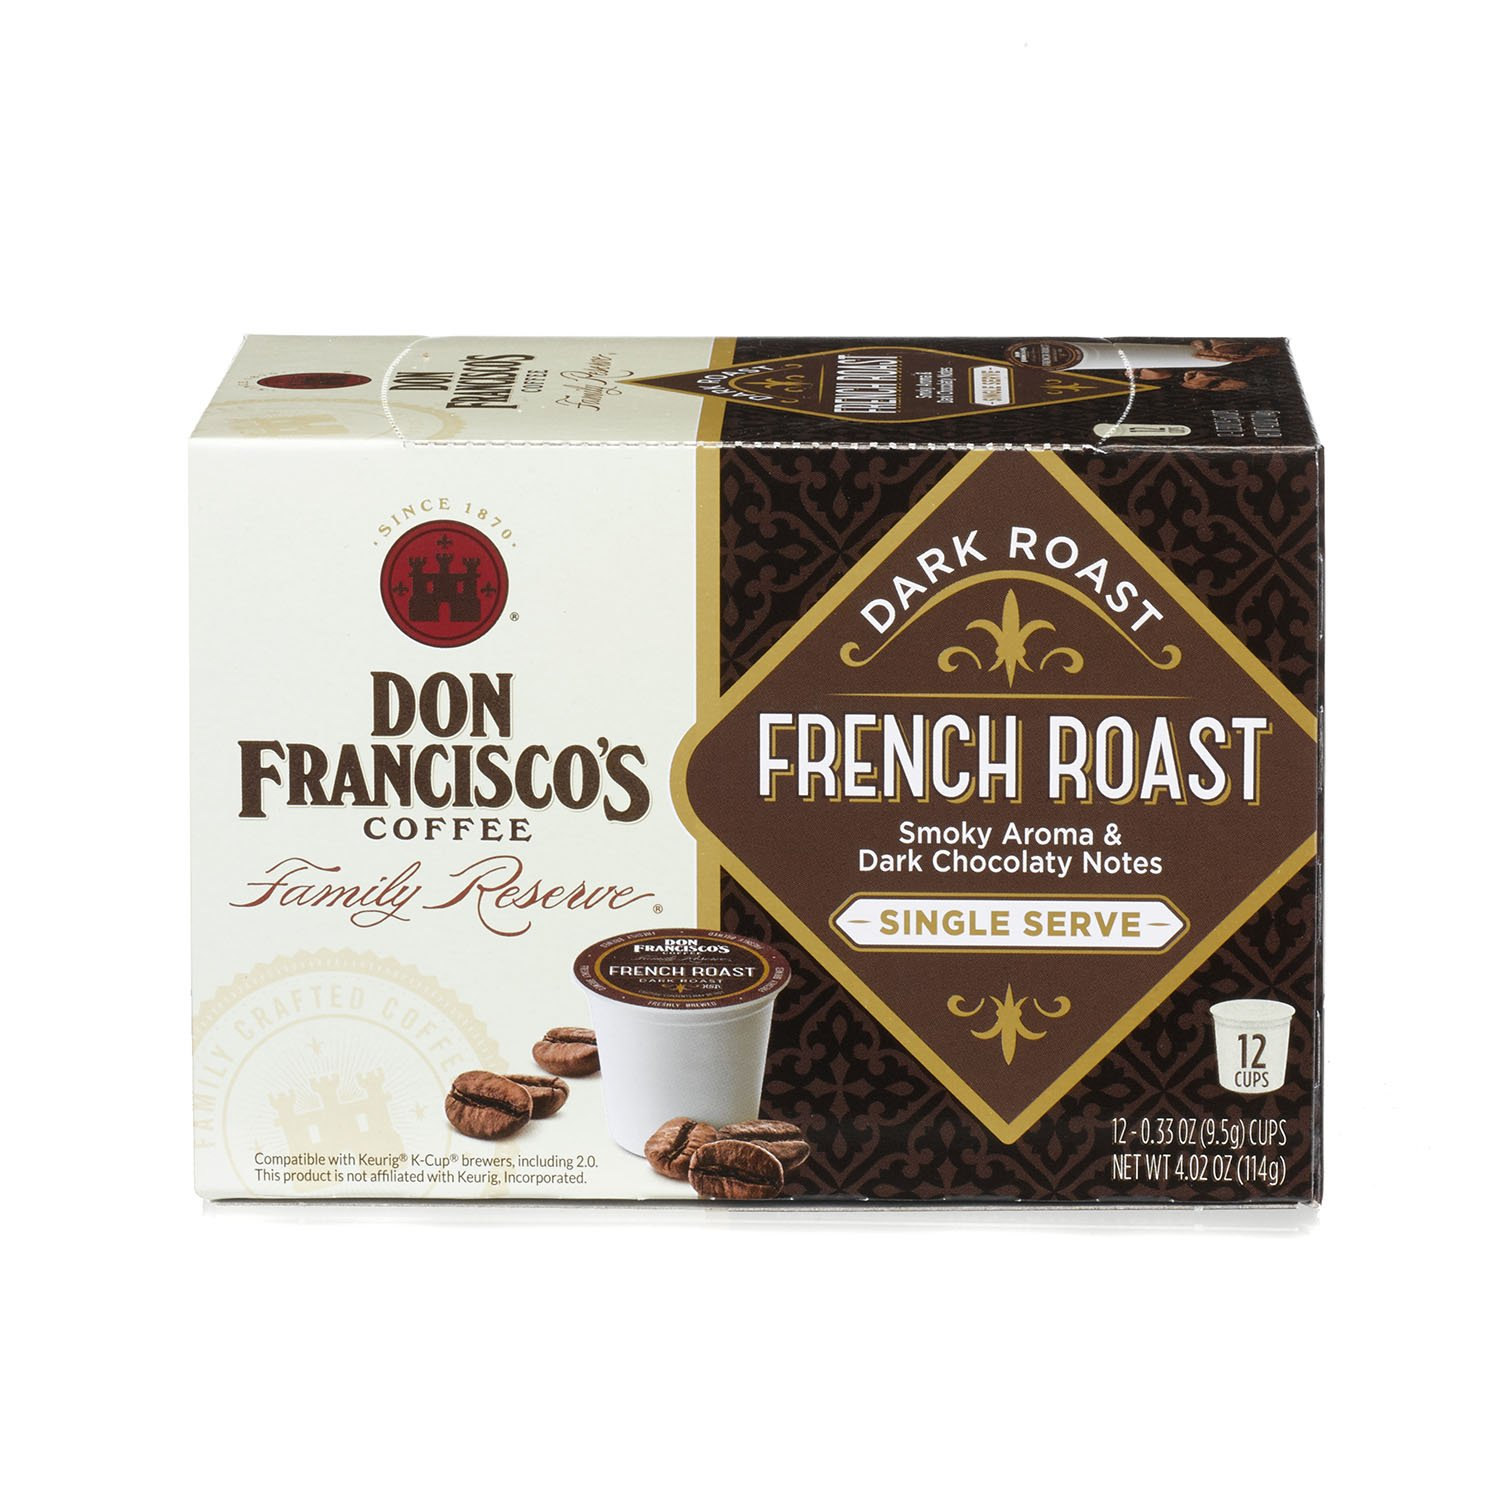 Don Francisco's French Roast, Premium 100% Arabica Coffee, Dark-Roast, Single-Serve Pods for Keurig, 12-Count, Family Reserve